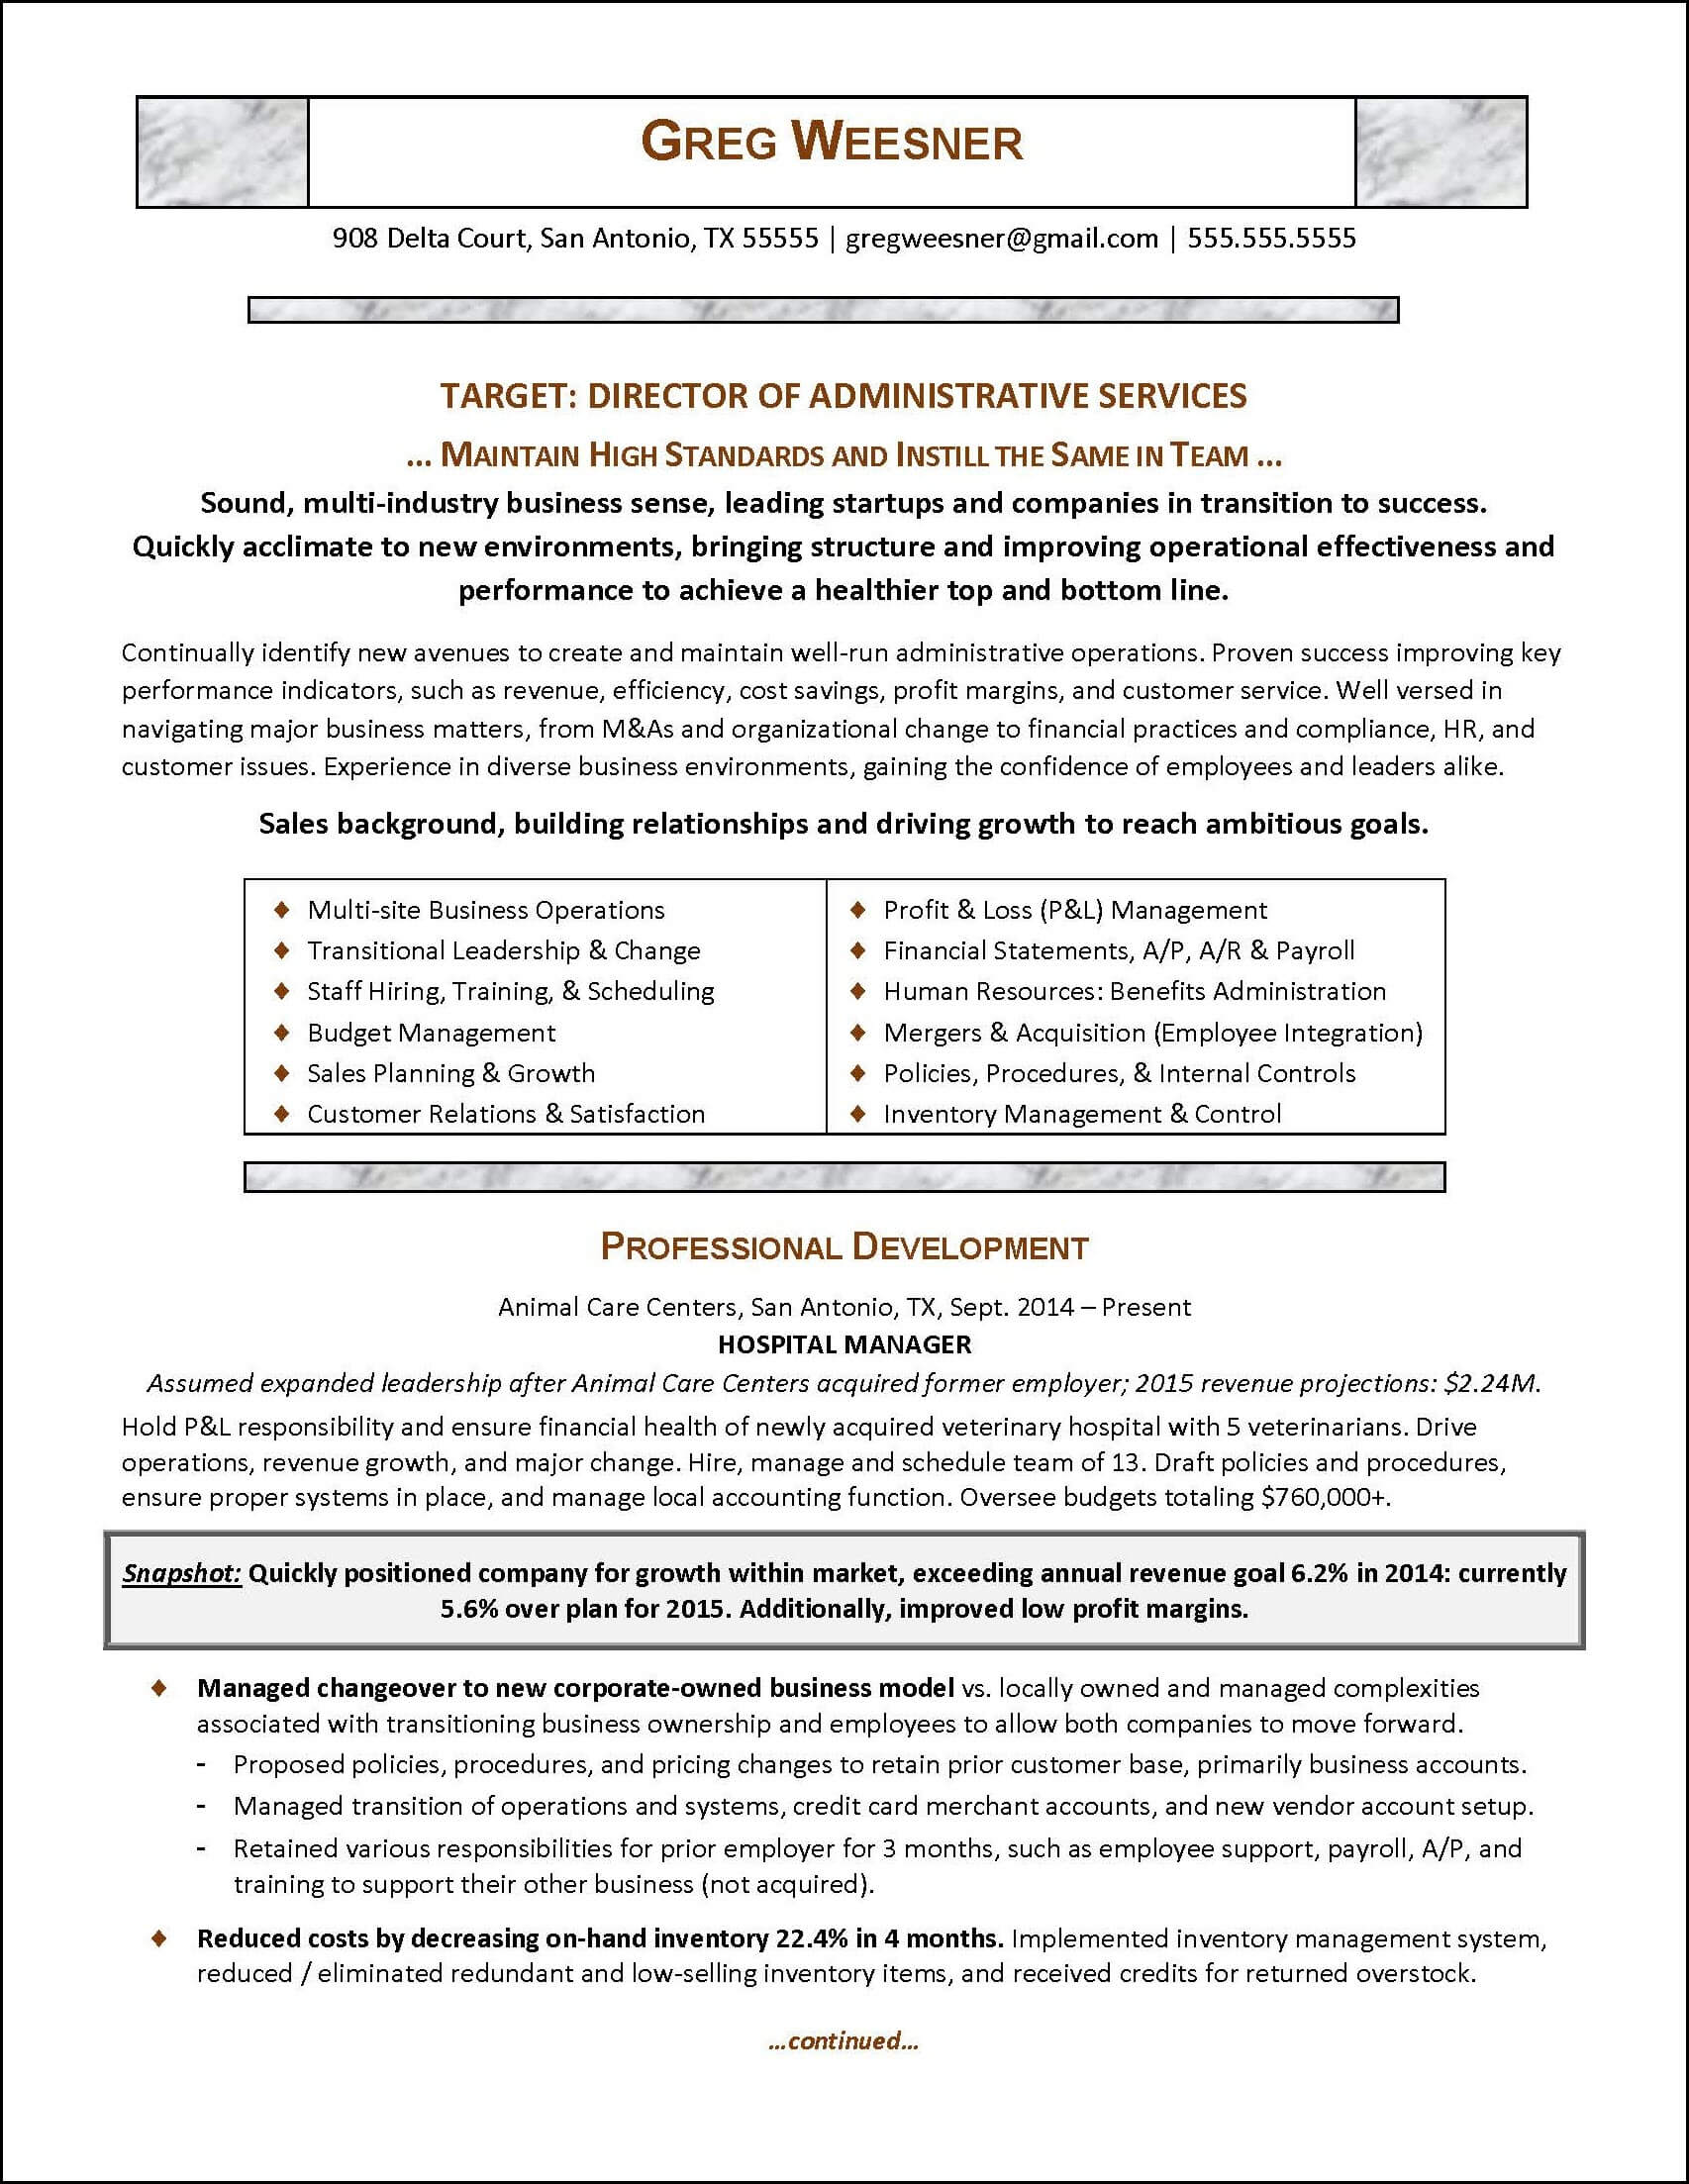 Sample career change resume for an administrative services manager - page 1